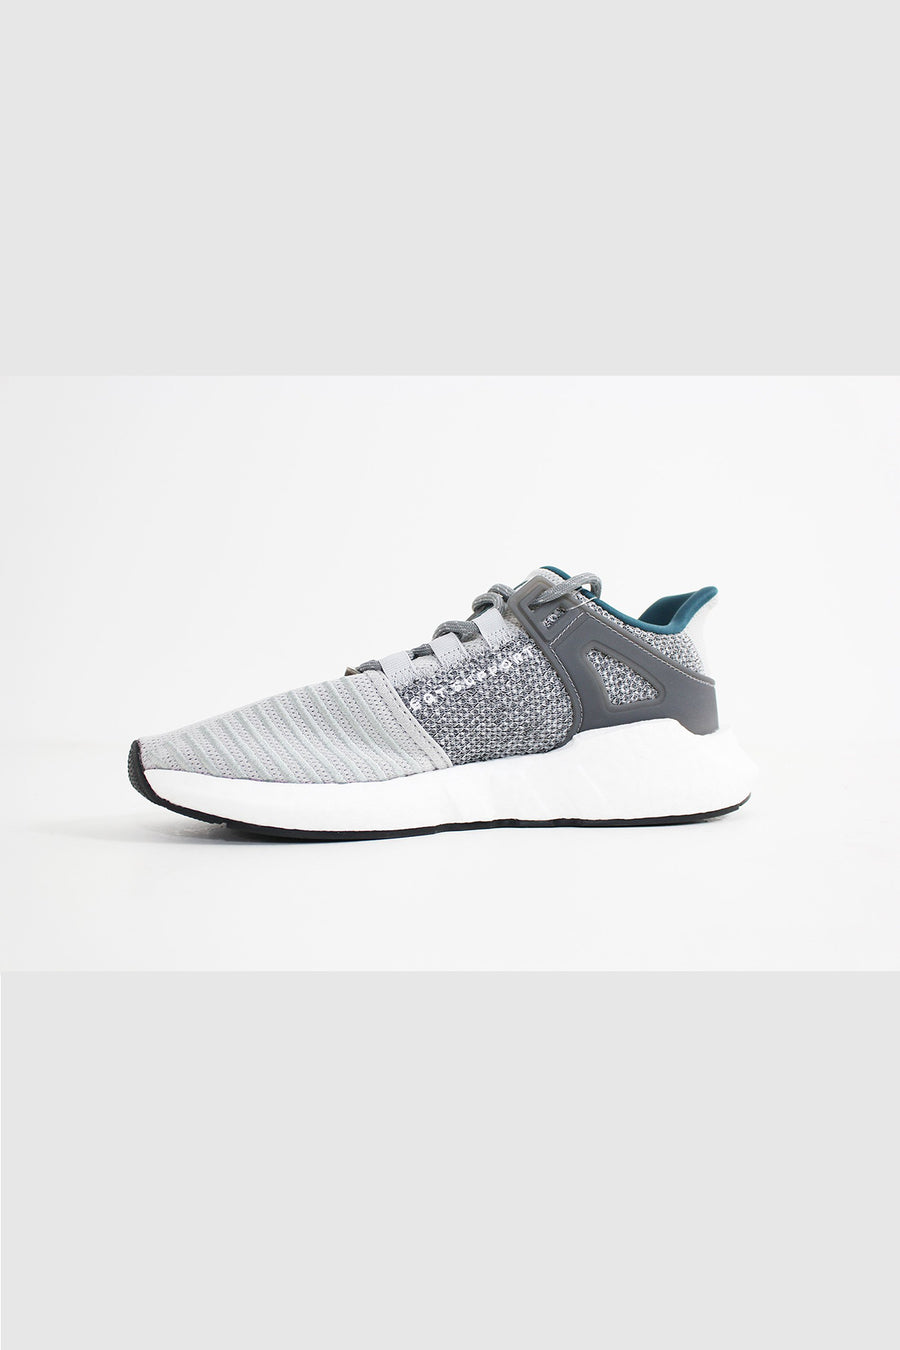 Adidas - EQT Support 93/17 (Grey Two/ Grey Three) CQ2395